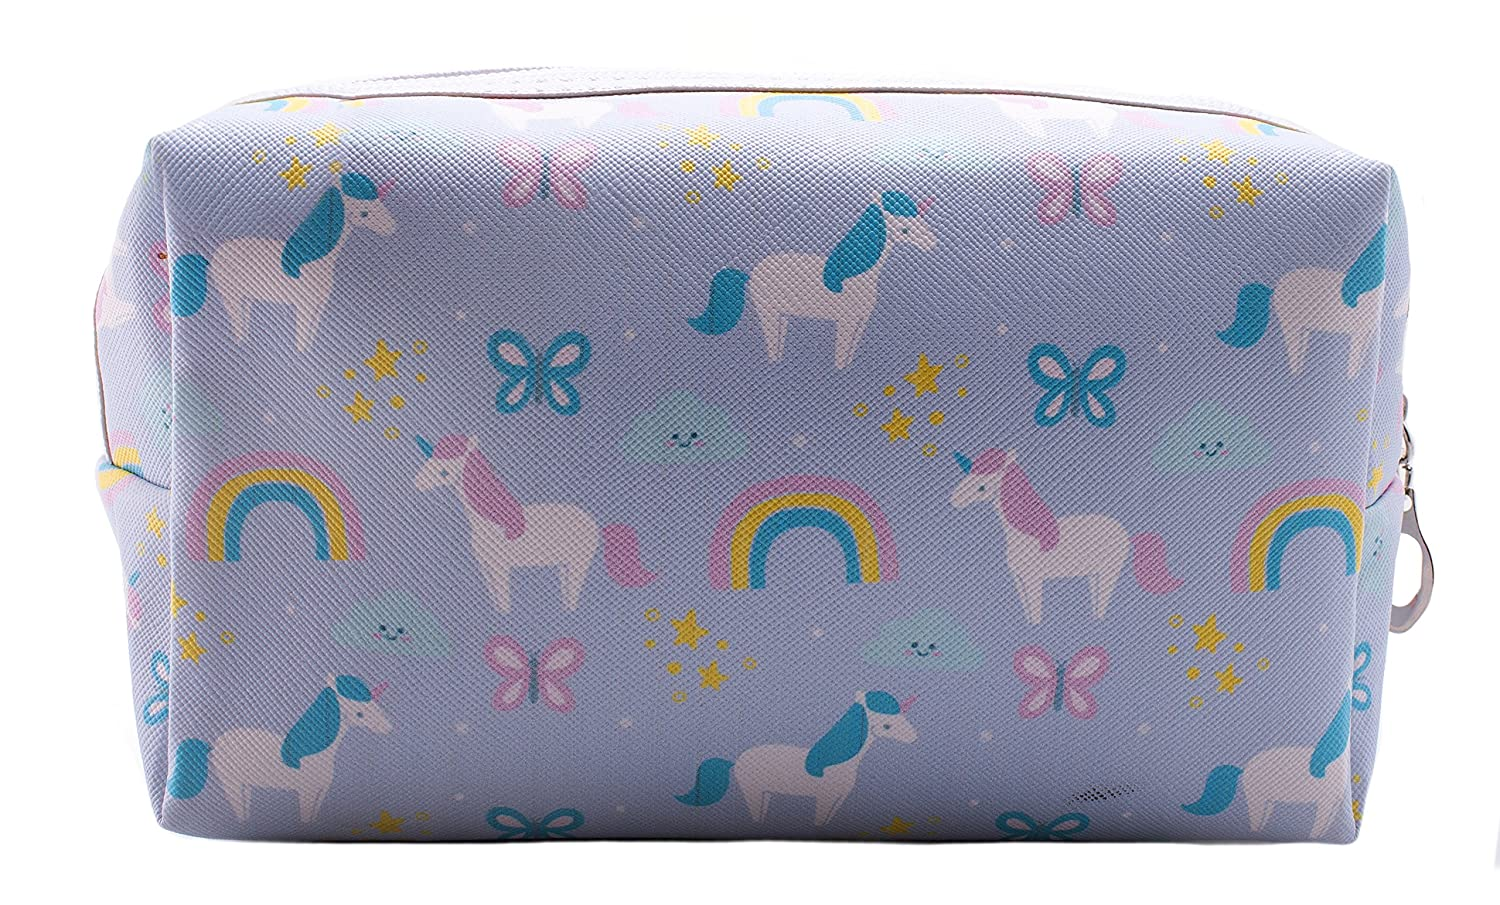 Amazon.com: Cosmetic Bag - Unicorn with Rainbows & Butterflies - Blue: Beauty